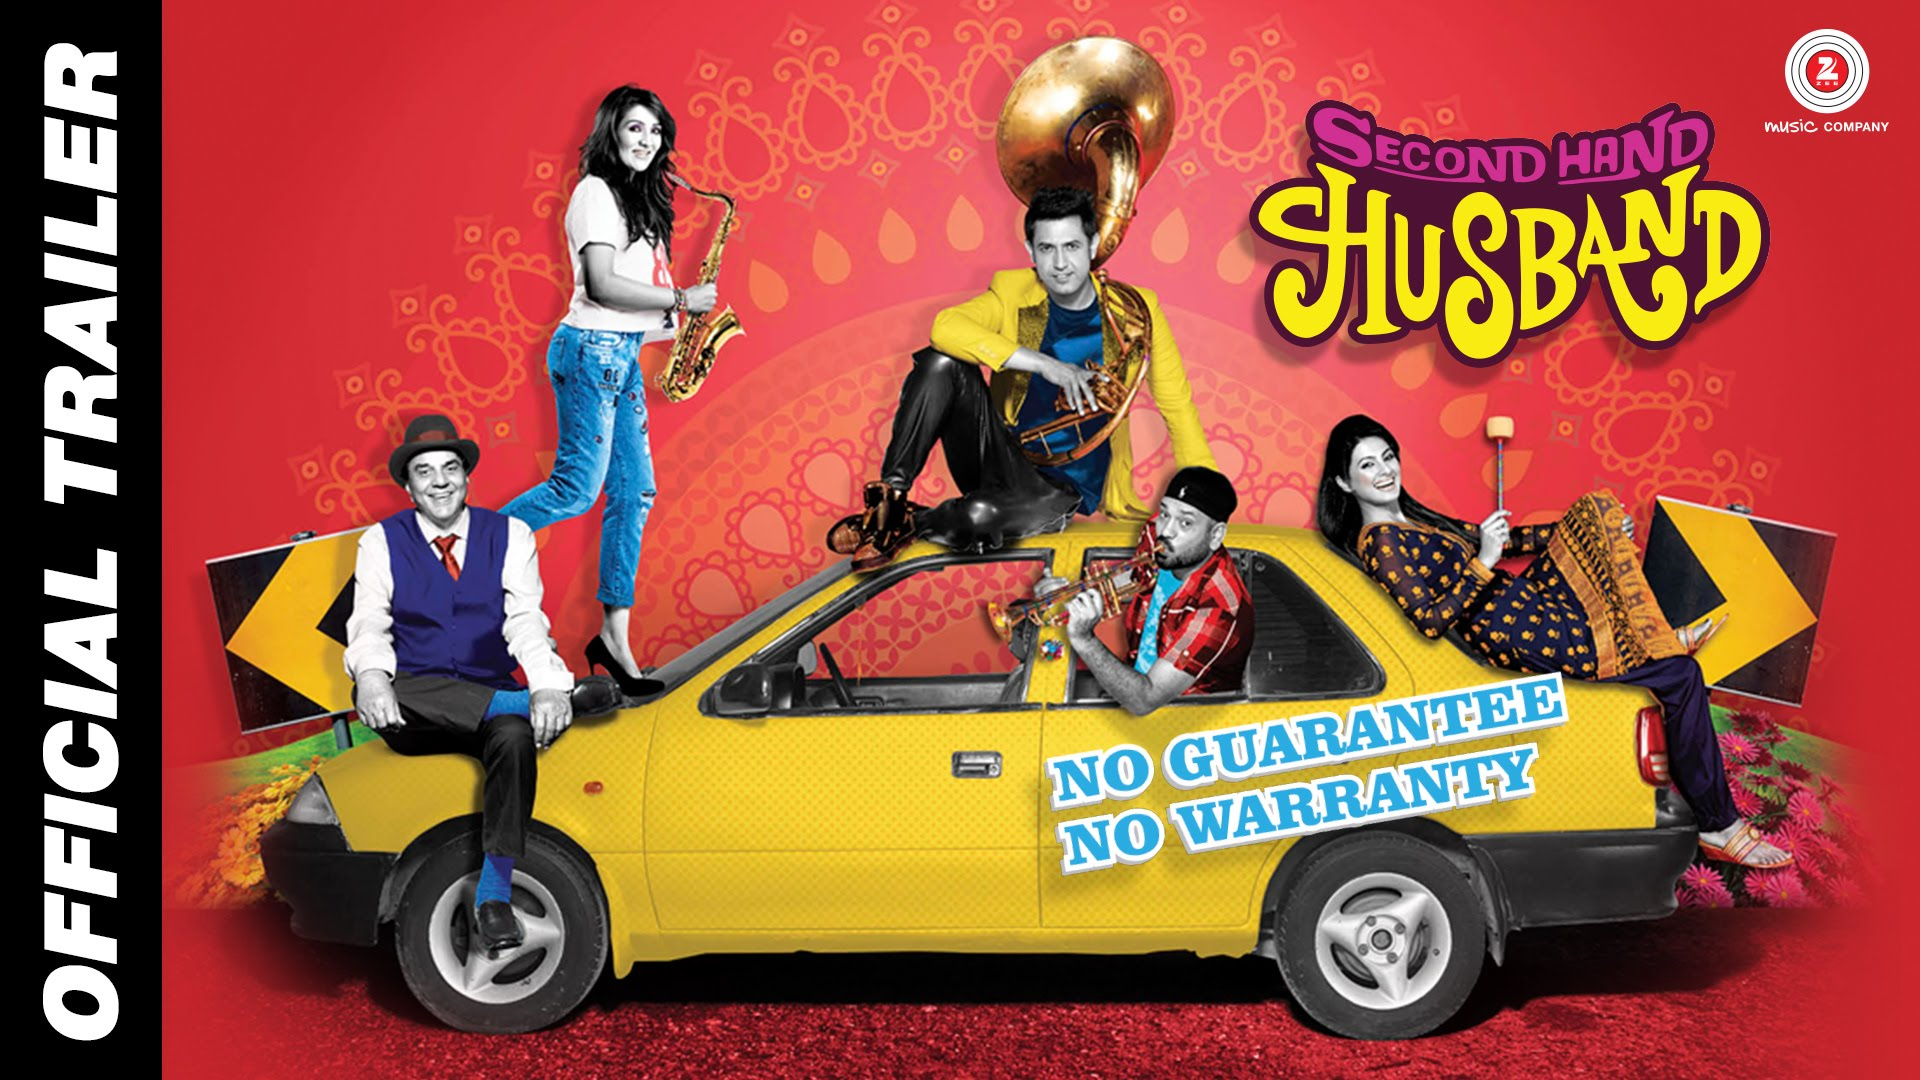 Second Hand Husband Trailer   Official Theatrical Trailer